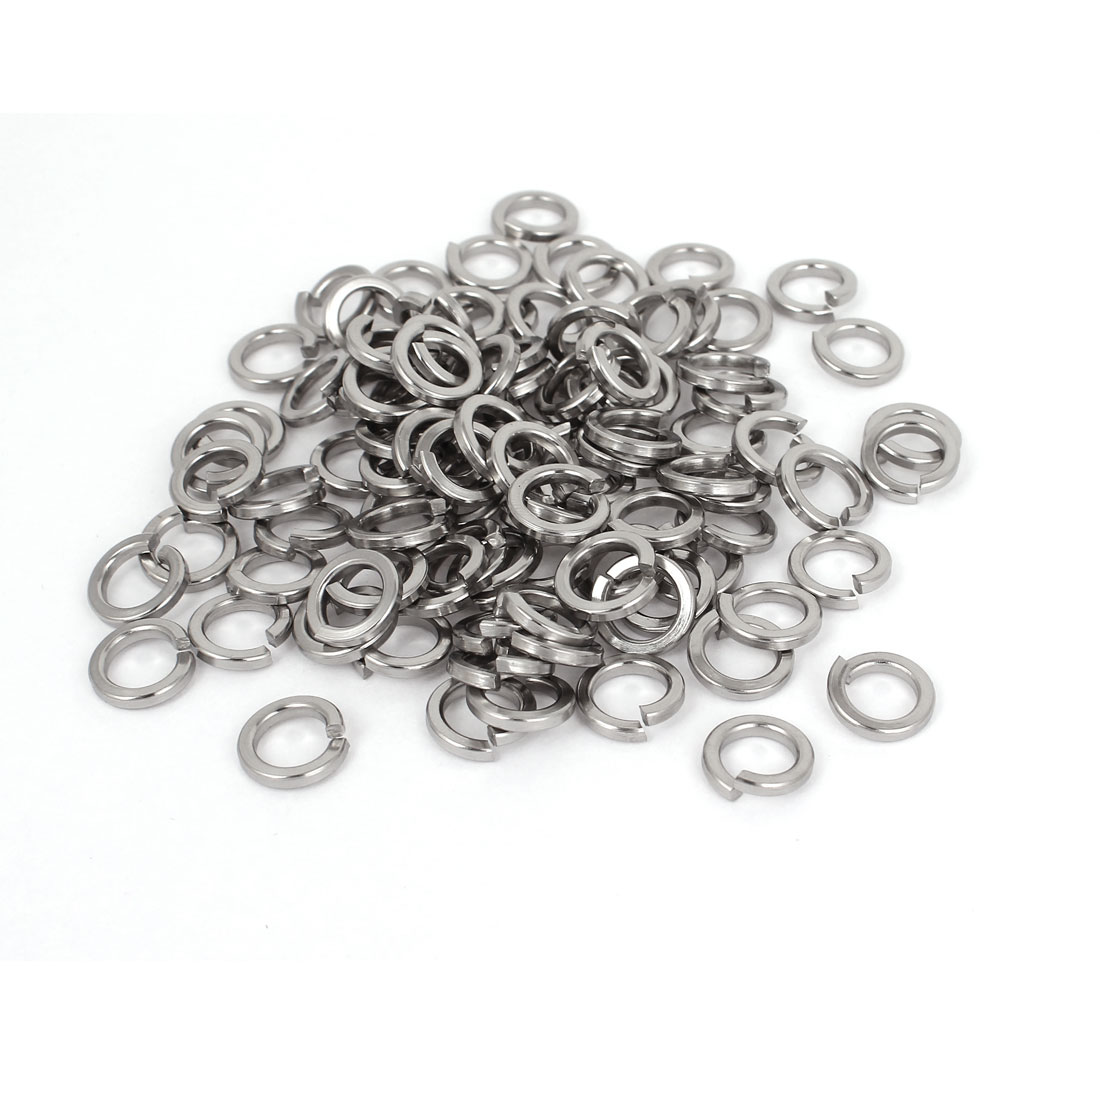 "100pcs 316 Stainless Steel Split Lock Spring Washers 5/16"" Screw Spacer Pad"